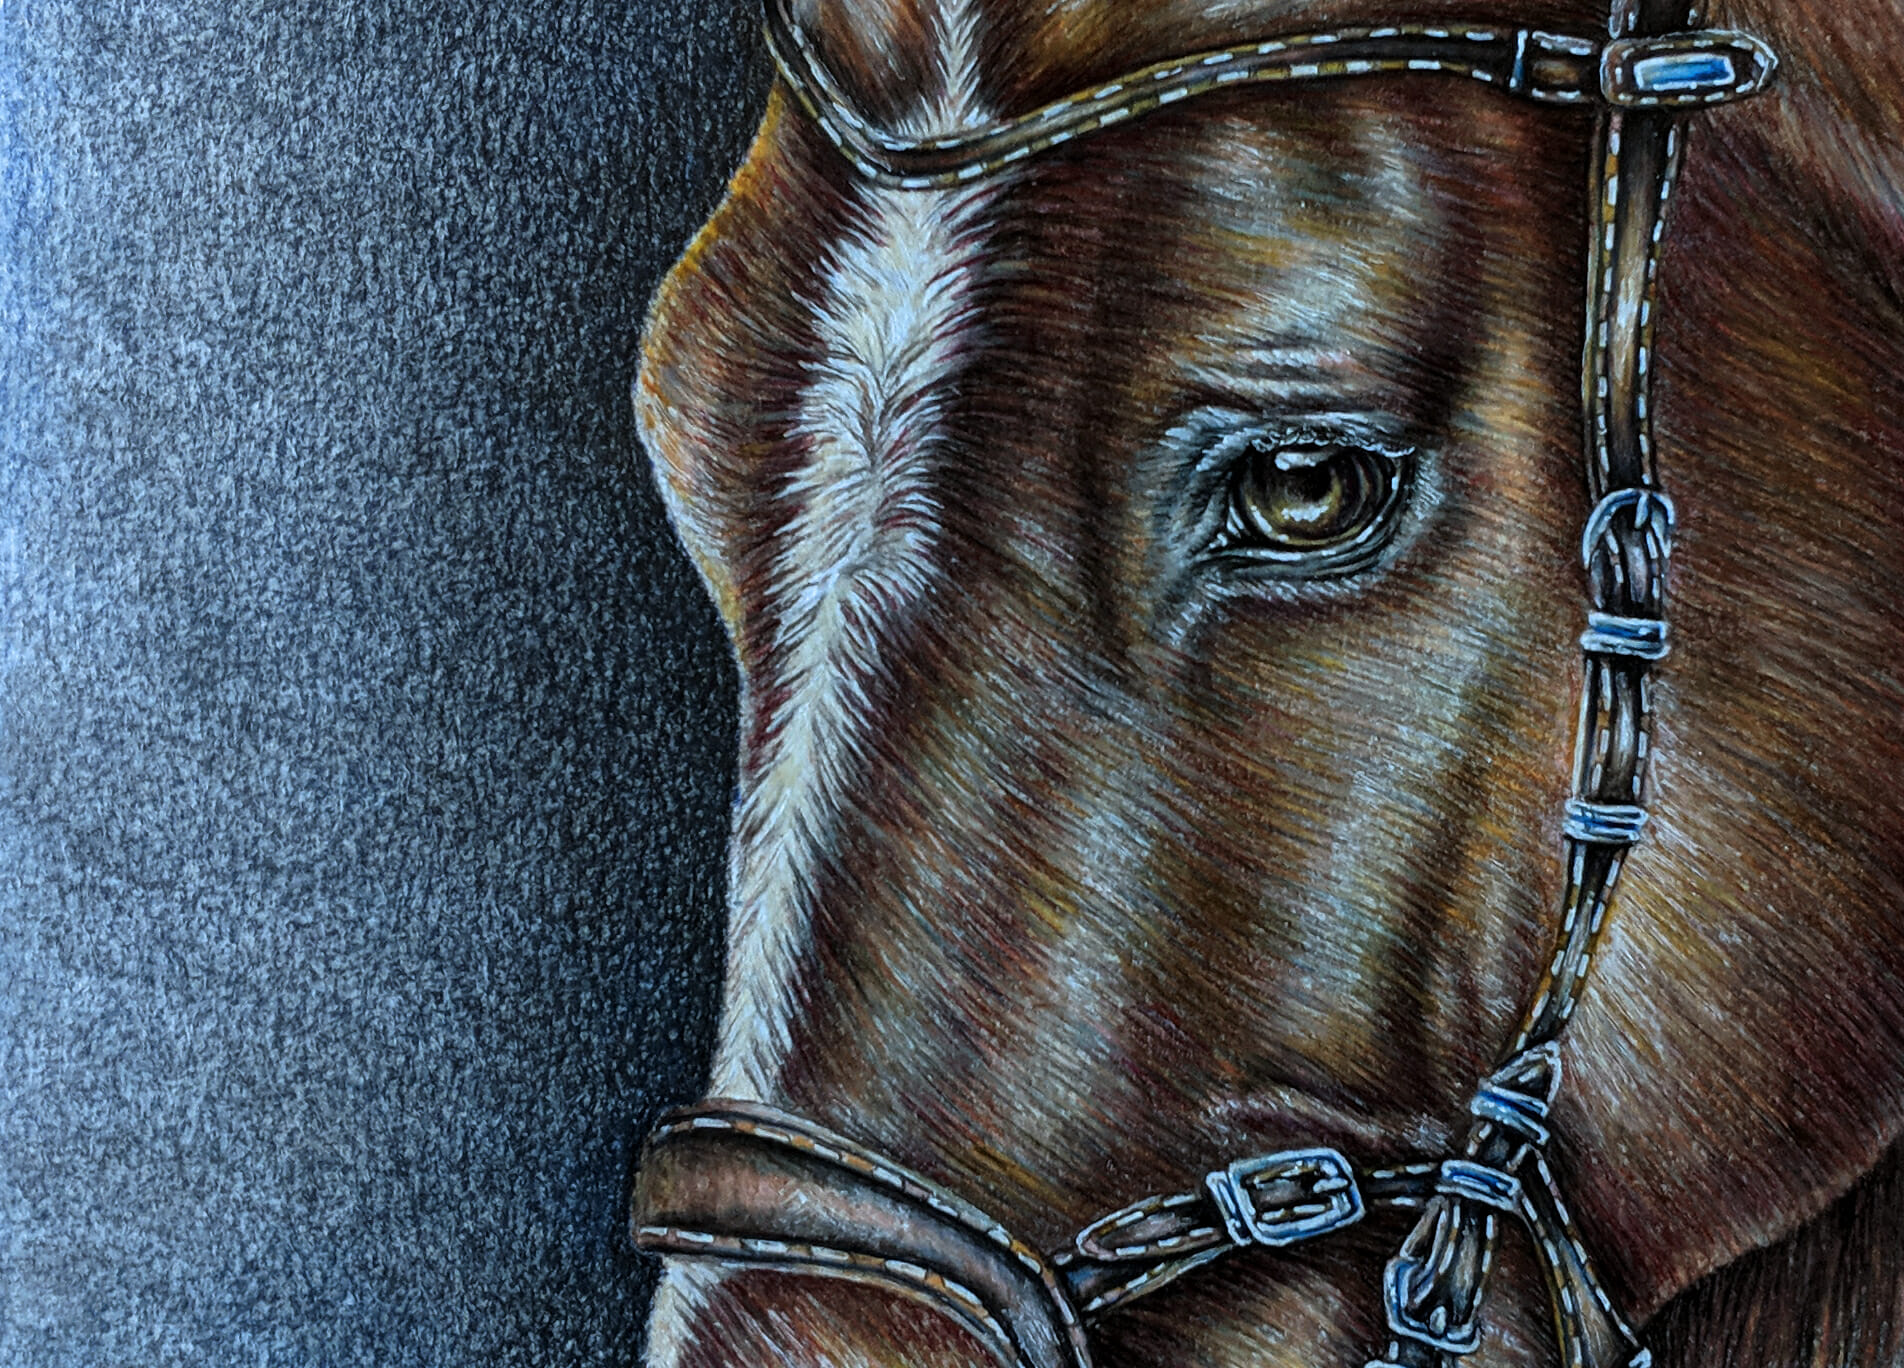 New Horse Drawing Colored Pencil Animal Art Artistry By Lisa Marie